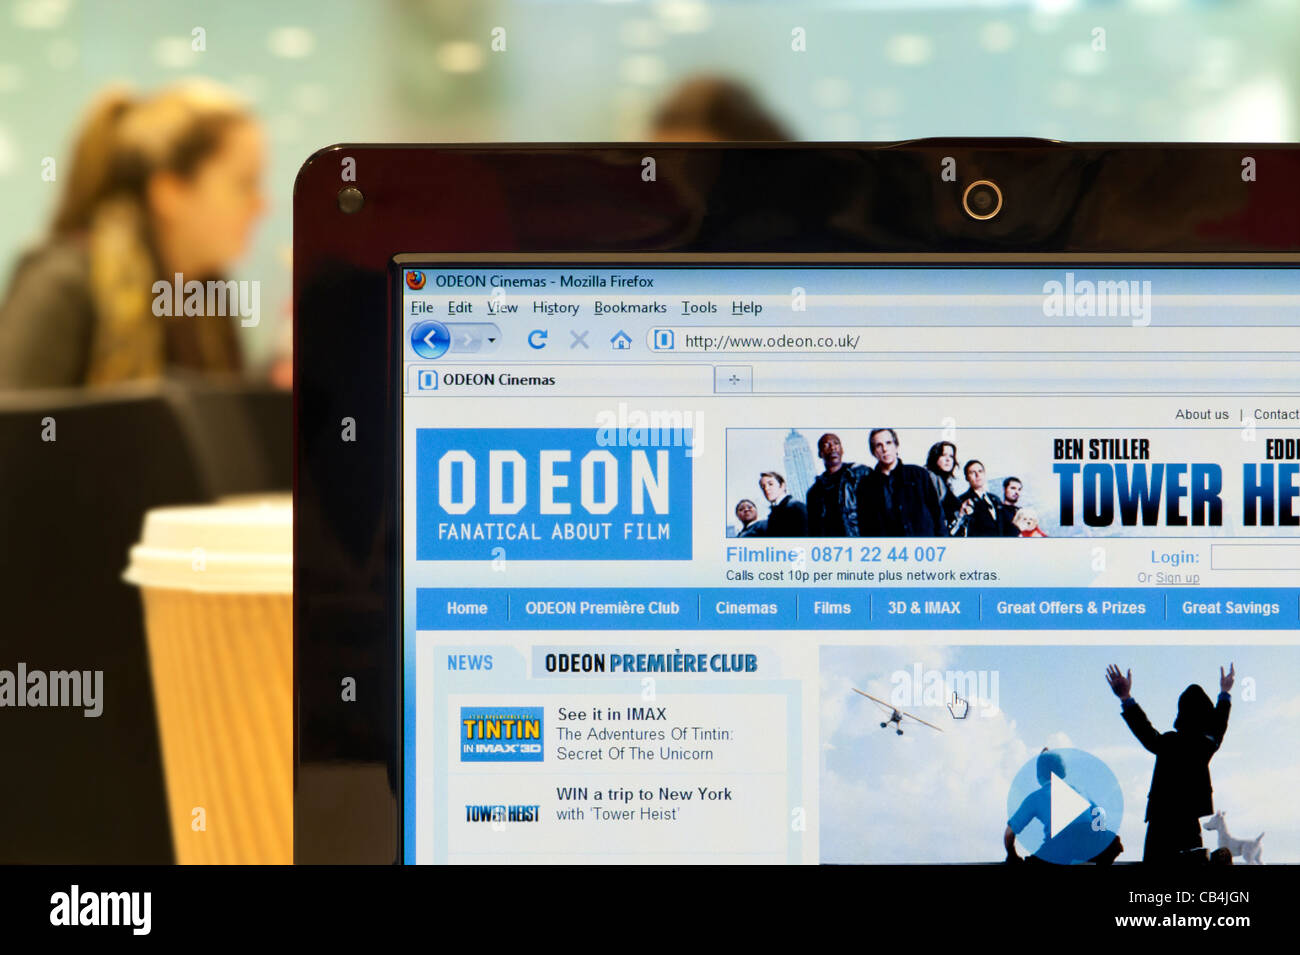 The Odeon website shot in a coffee shop environment (Editorial use only: ­print, TV, e-book and editorial website). - Stock Image